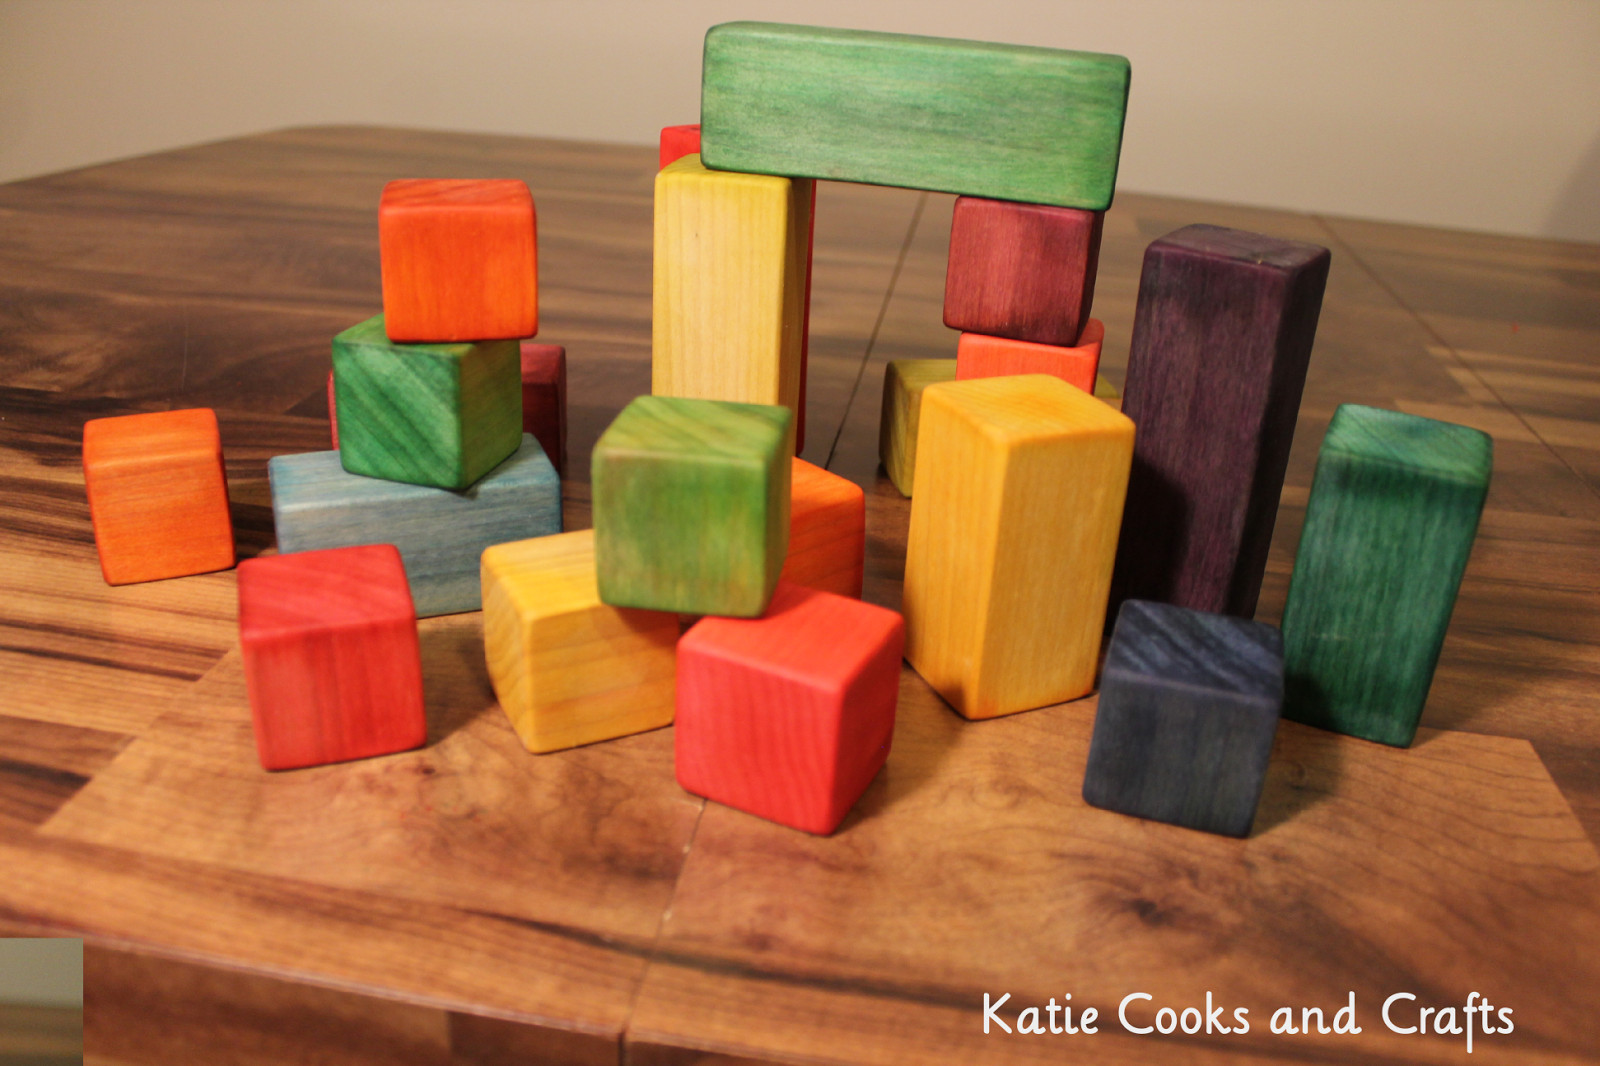 DIY Wooden Blocks  Katie Cooks and Crafts DIY Wooden Blocks Easy Wood Toy